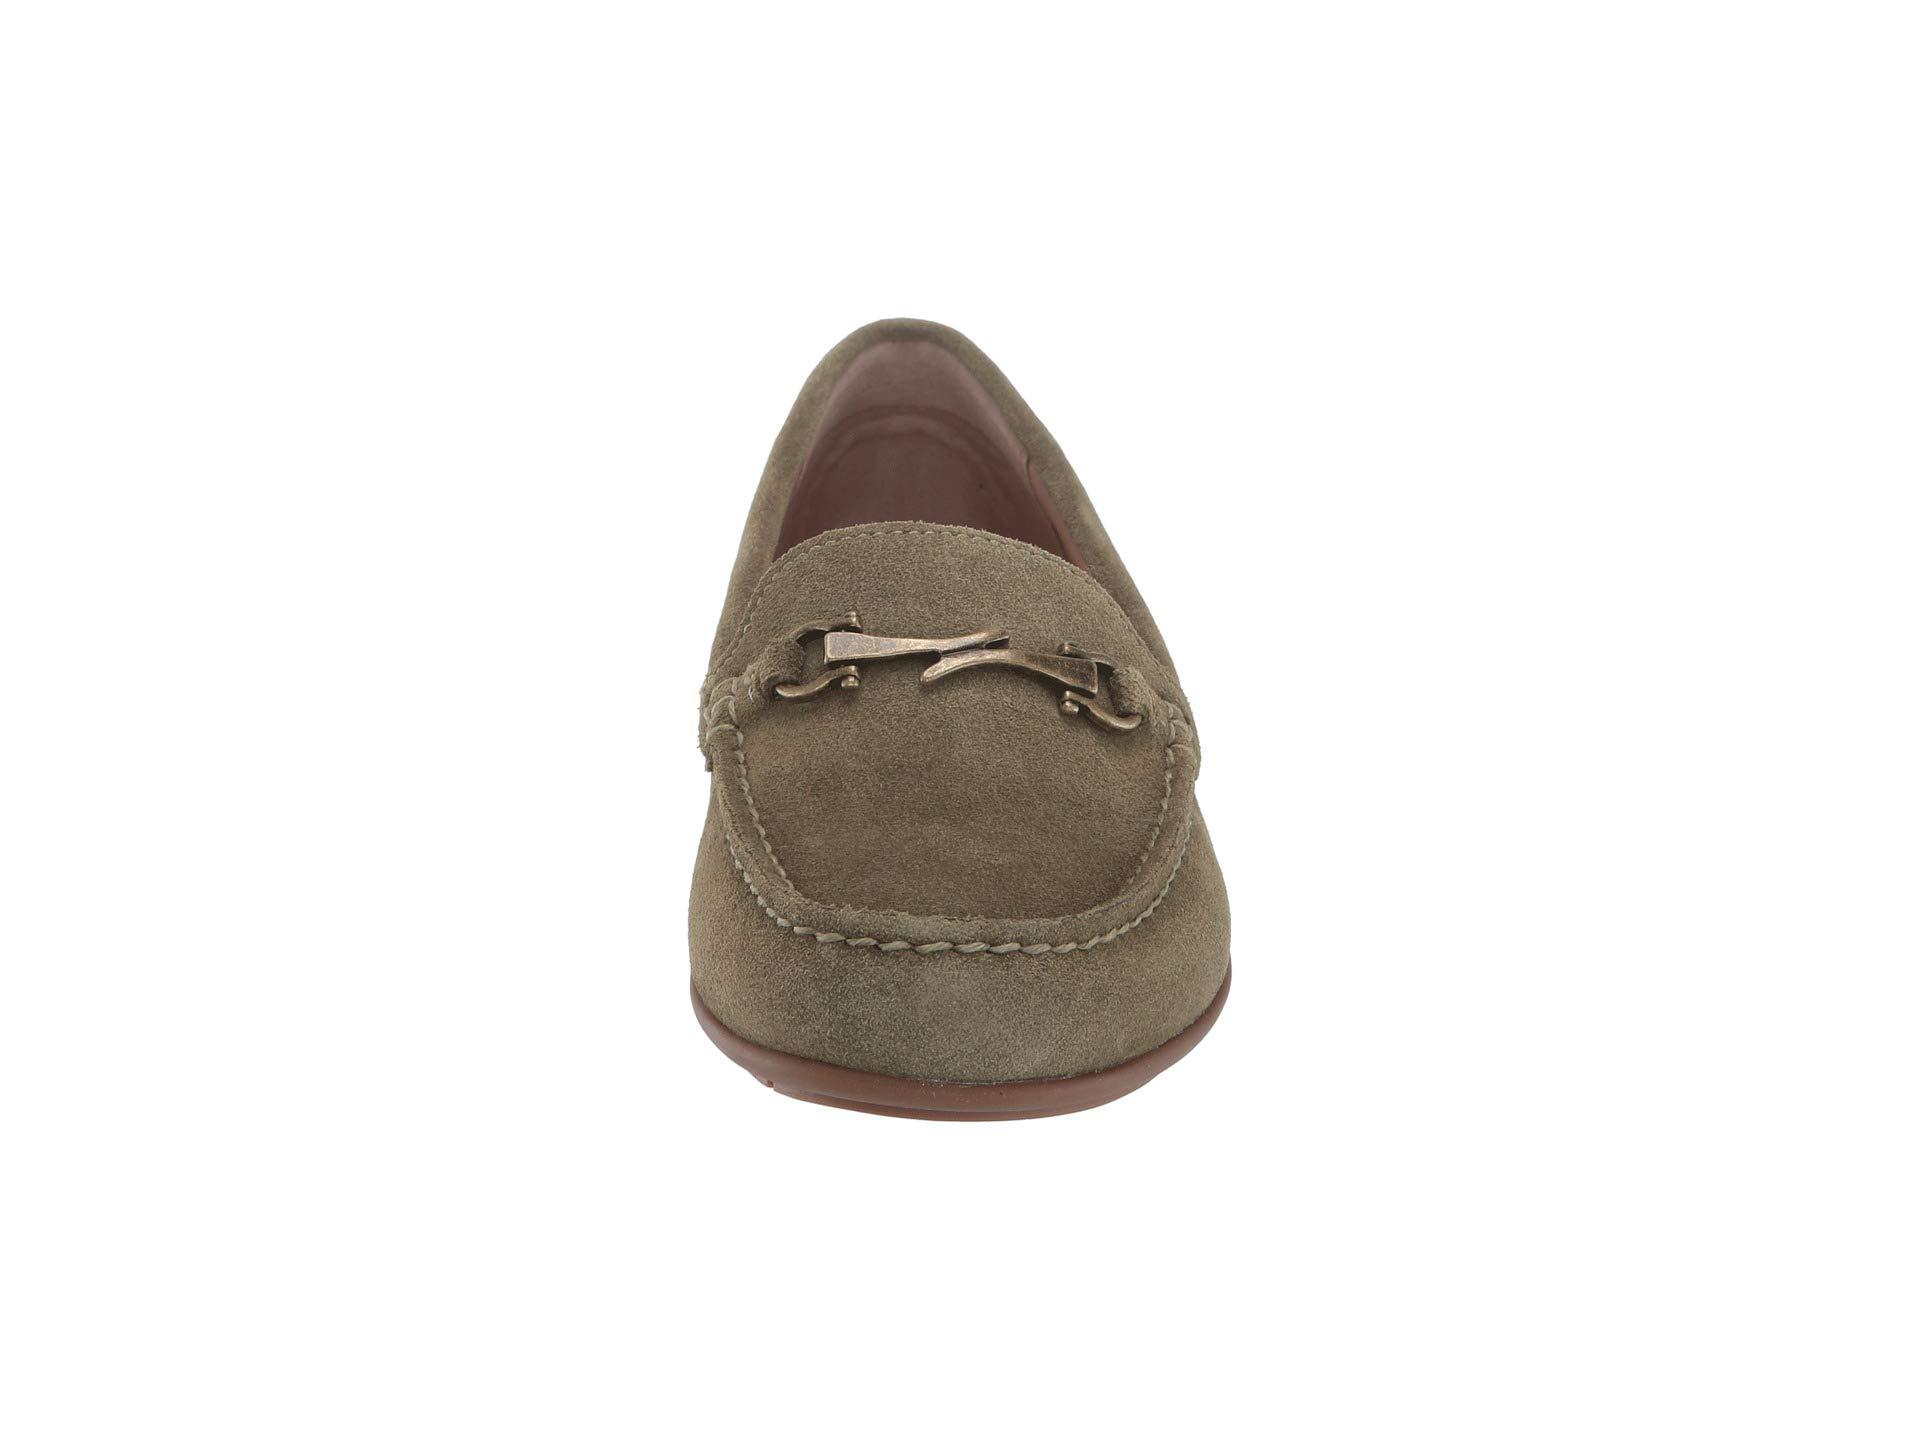 c206d74f54d Taos Footwear - Green Bit Moc (grey Suede) Women s Slip On Shoes - Lyst.  View fullscreen